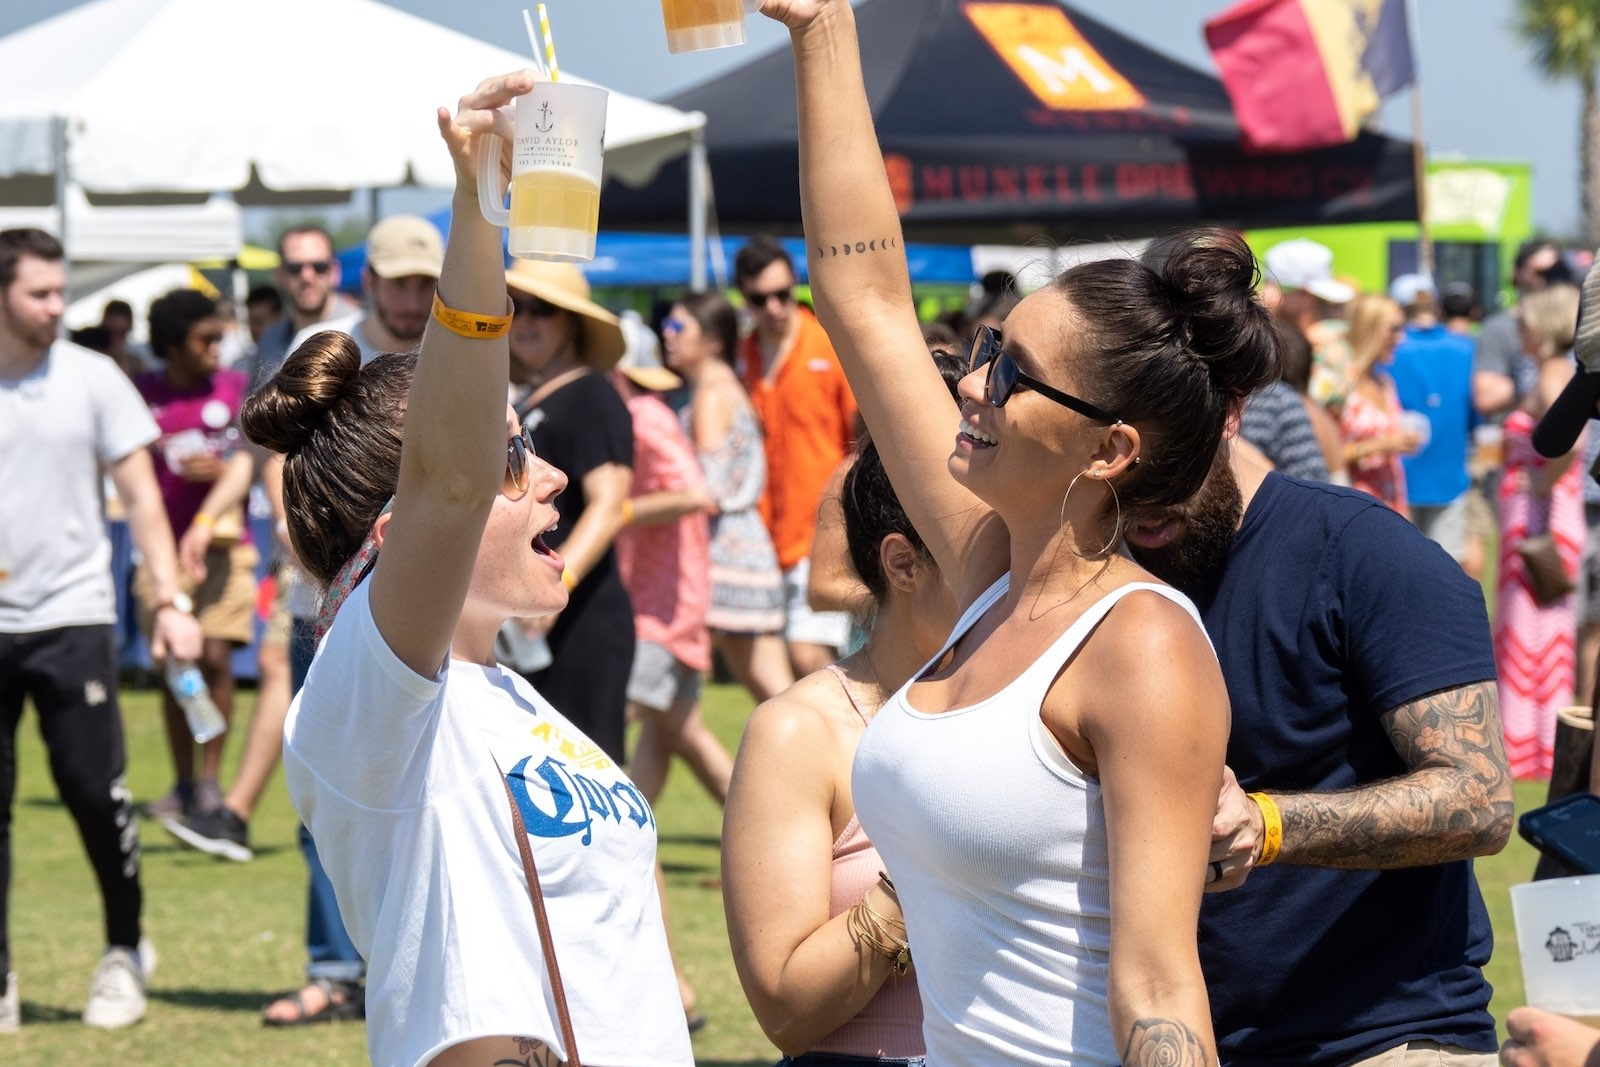 The 2021 Charleston Beer Festival, which was slated to take place October 9th in North Charleston's Riverfront Park, has been canceled.